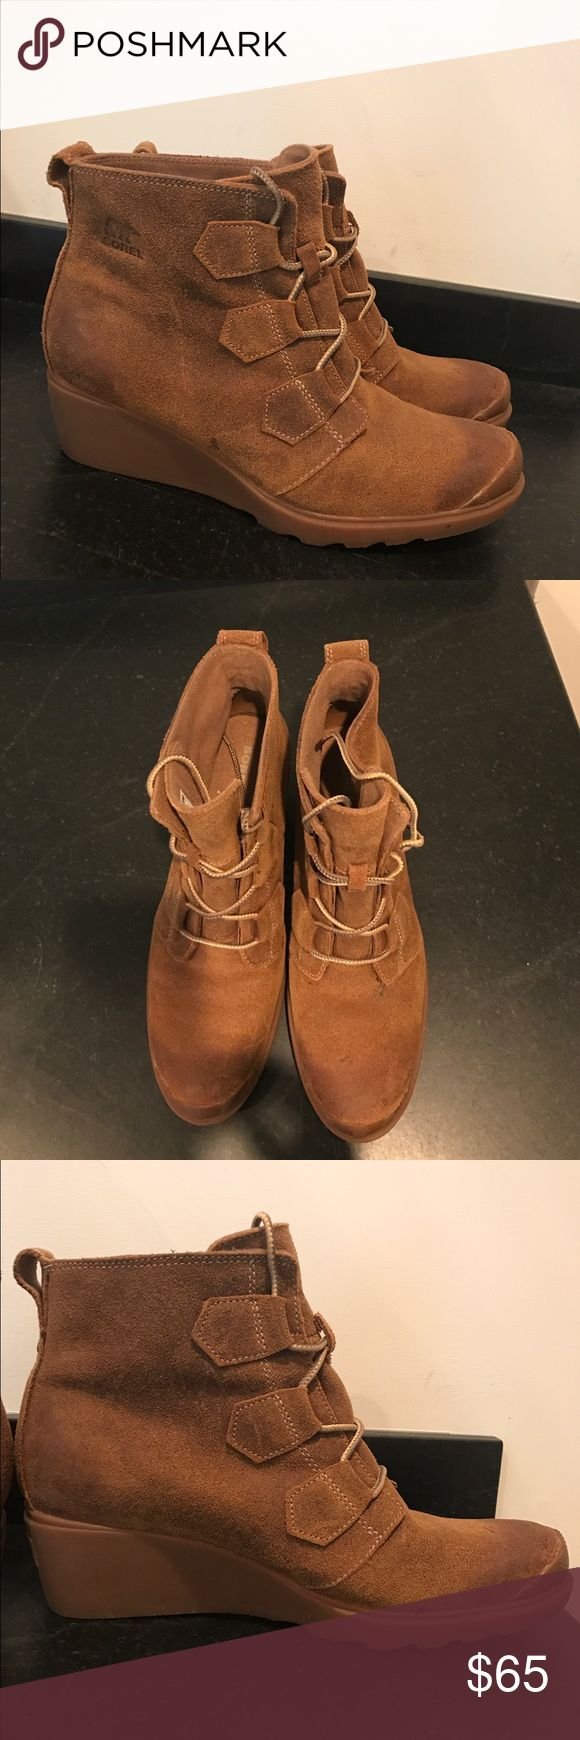 Sorel Women's Lace Up Boots Distressed boats in great condition, only worn a few times, waterproof, gently used Sorel Shoes Winter & Rain Boots